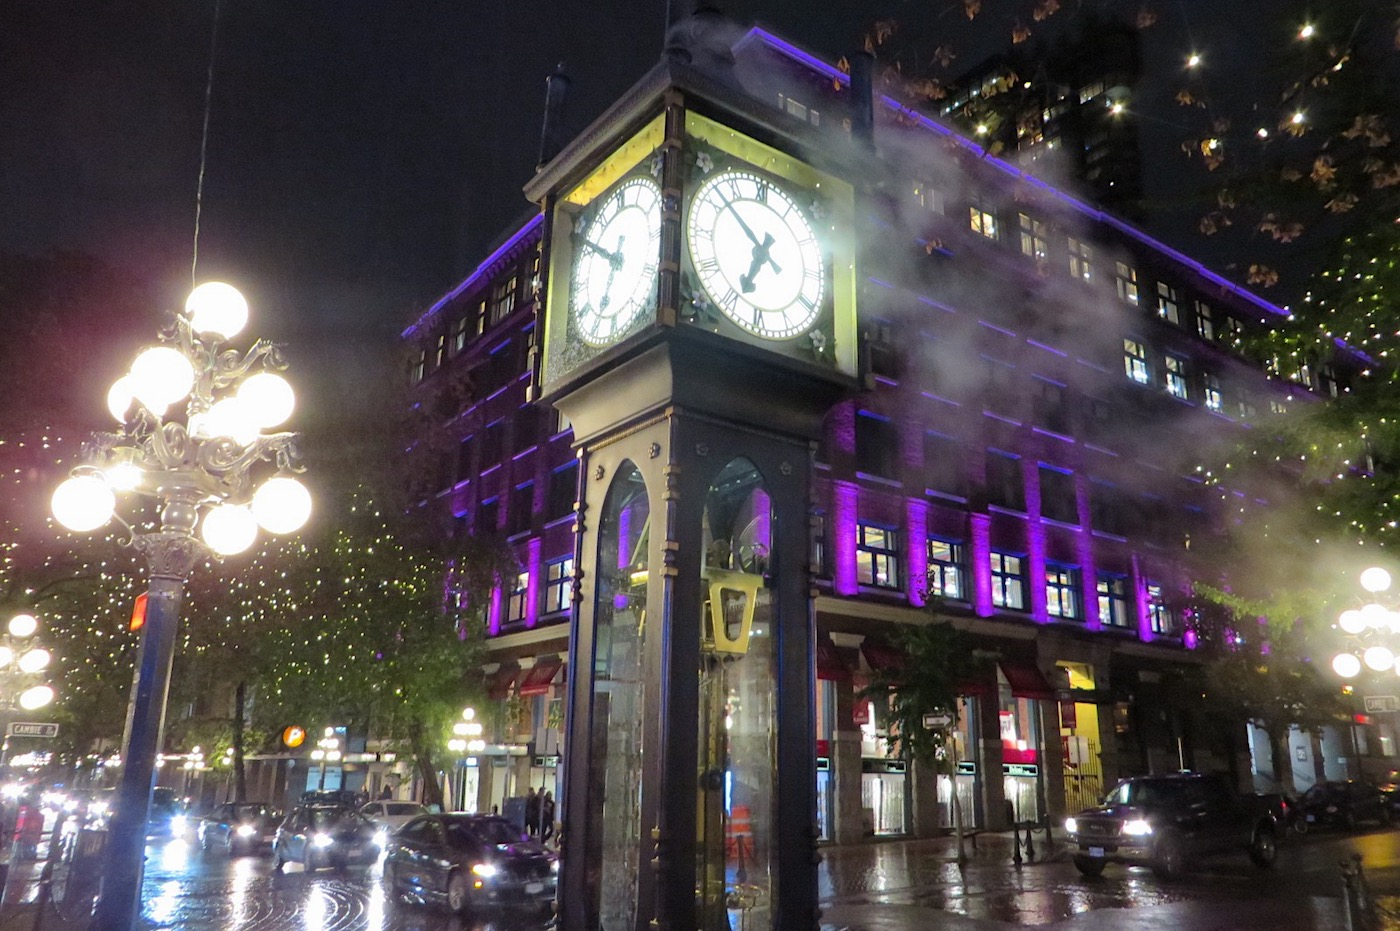 the famed Gastown clock in the evening mists…